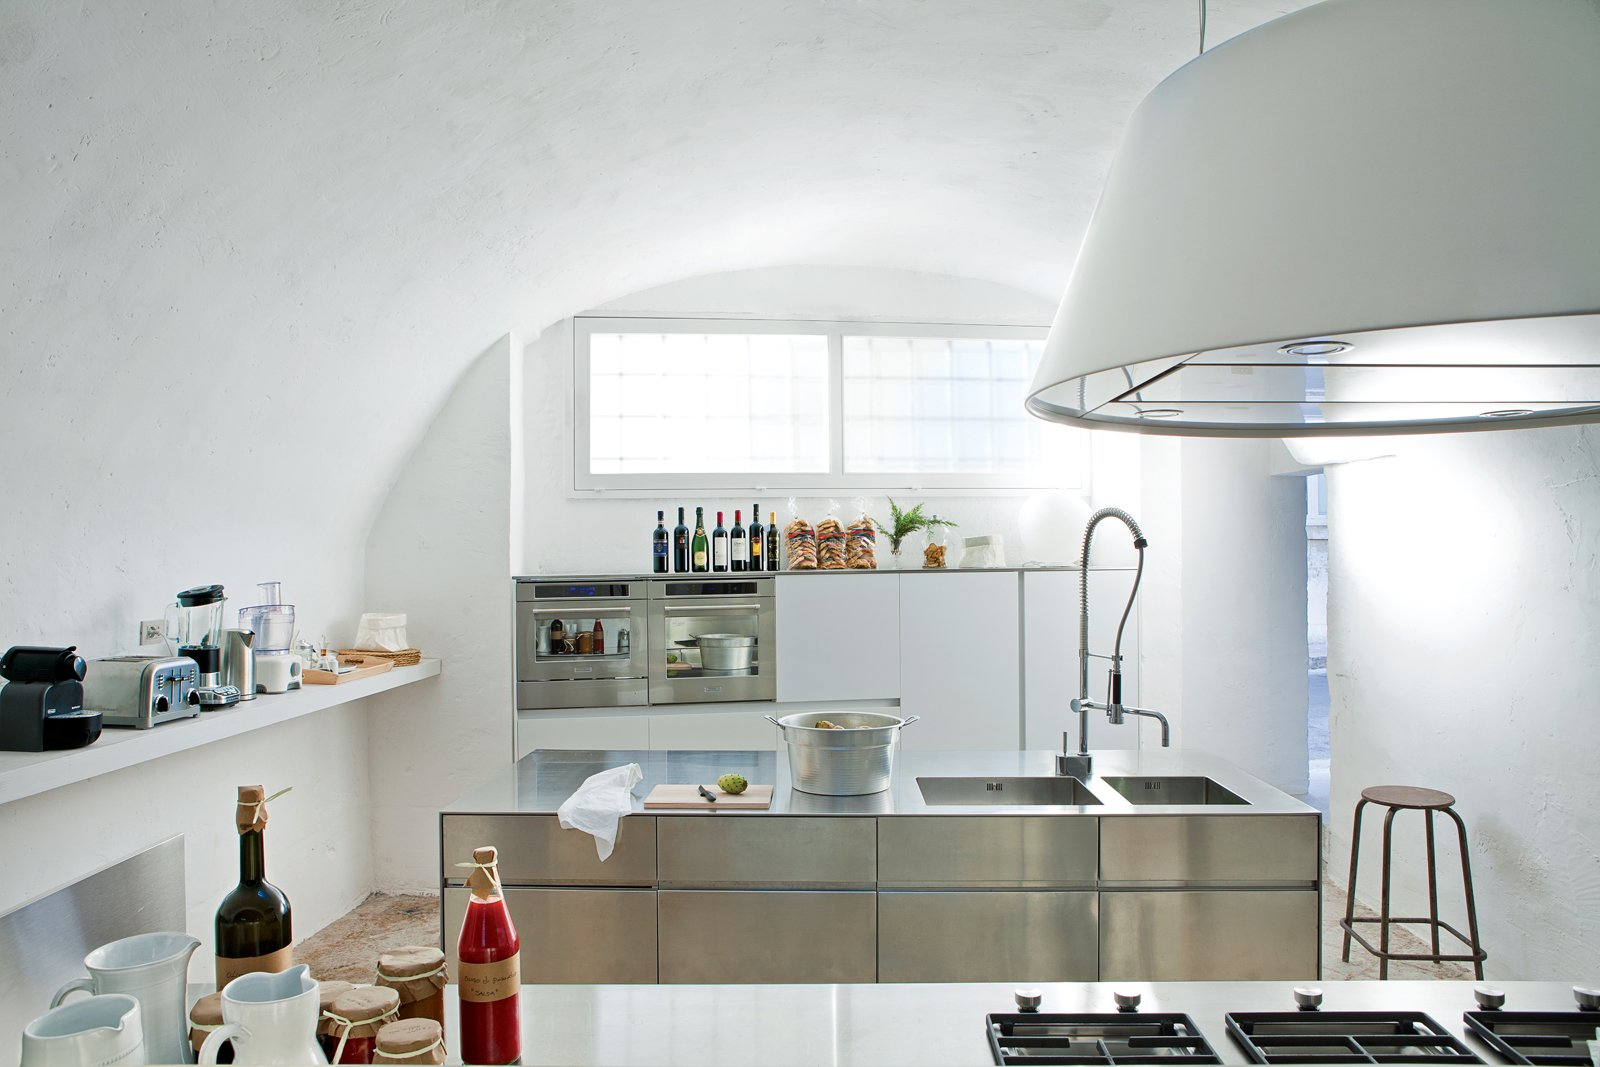 In the minmalist kitchen: sleek steel cabinet systems and the Kono range hood from Elmar. Tagged: Kitchen, Metal Counter, Metal Cabinet, Drop In Sink, Range Hood, Wall Oven, Open Cabinet, Table Lighting, and Range.  Kitchen by Lara Deam from Modern Meets Ancient in a Renovated Italian Vacation Home